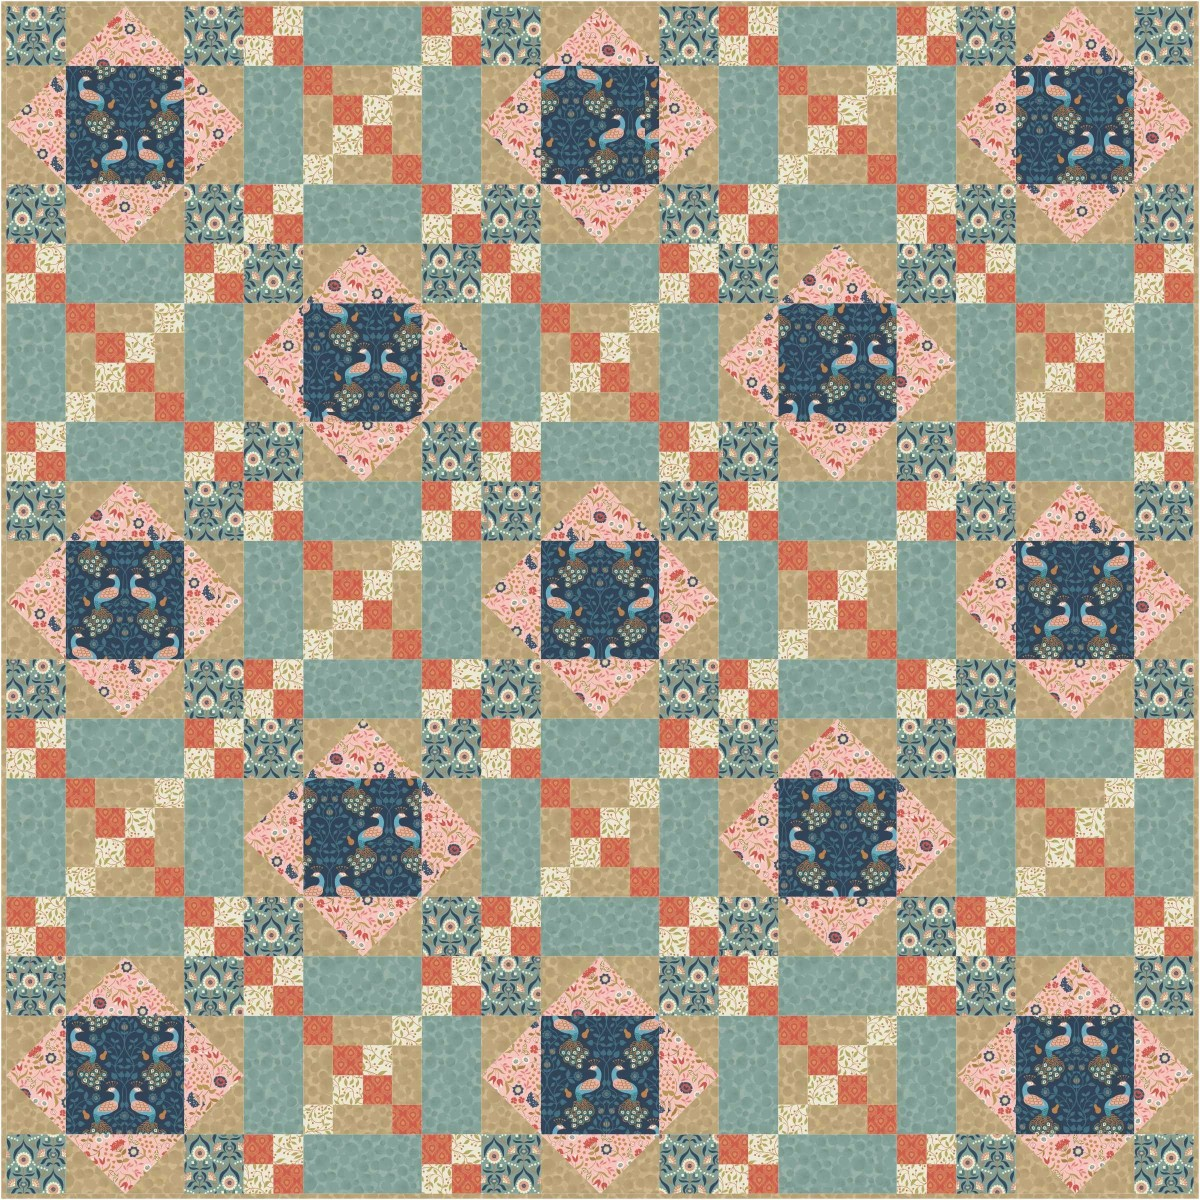 Chieveley Quilt Design 2